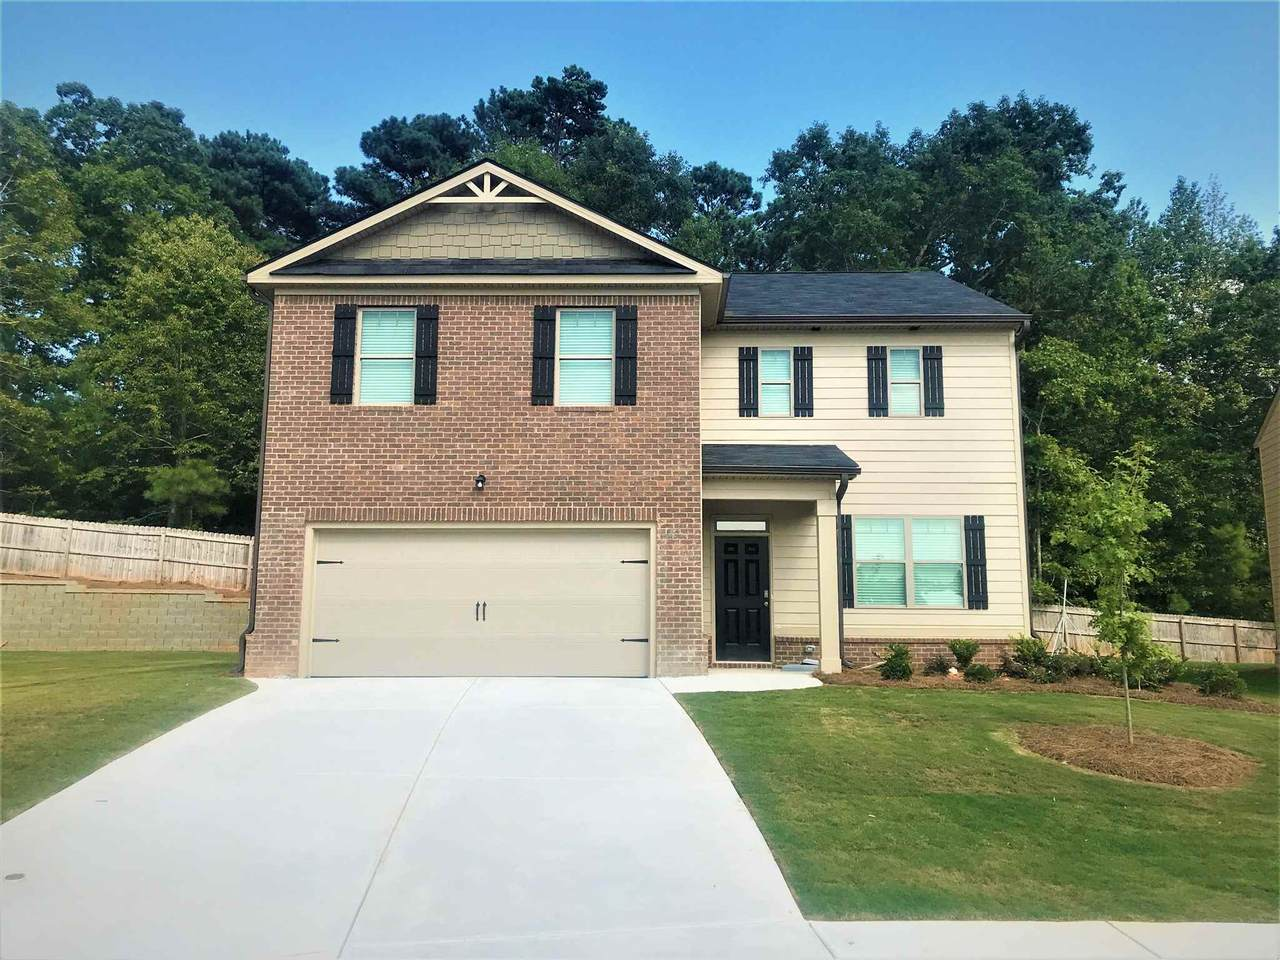 1680 Alford Dr - Photo 1